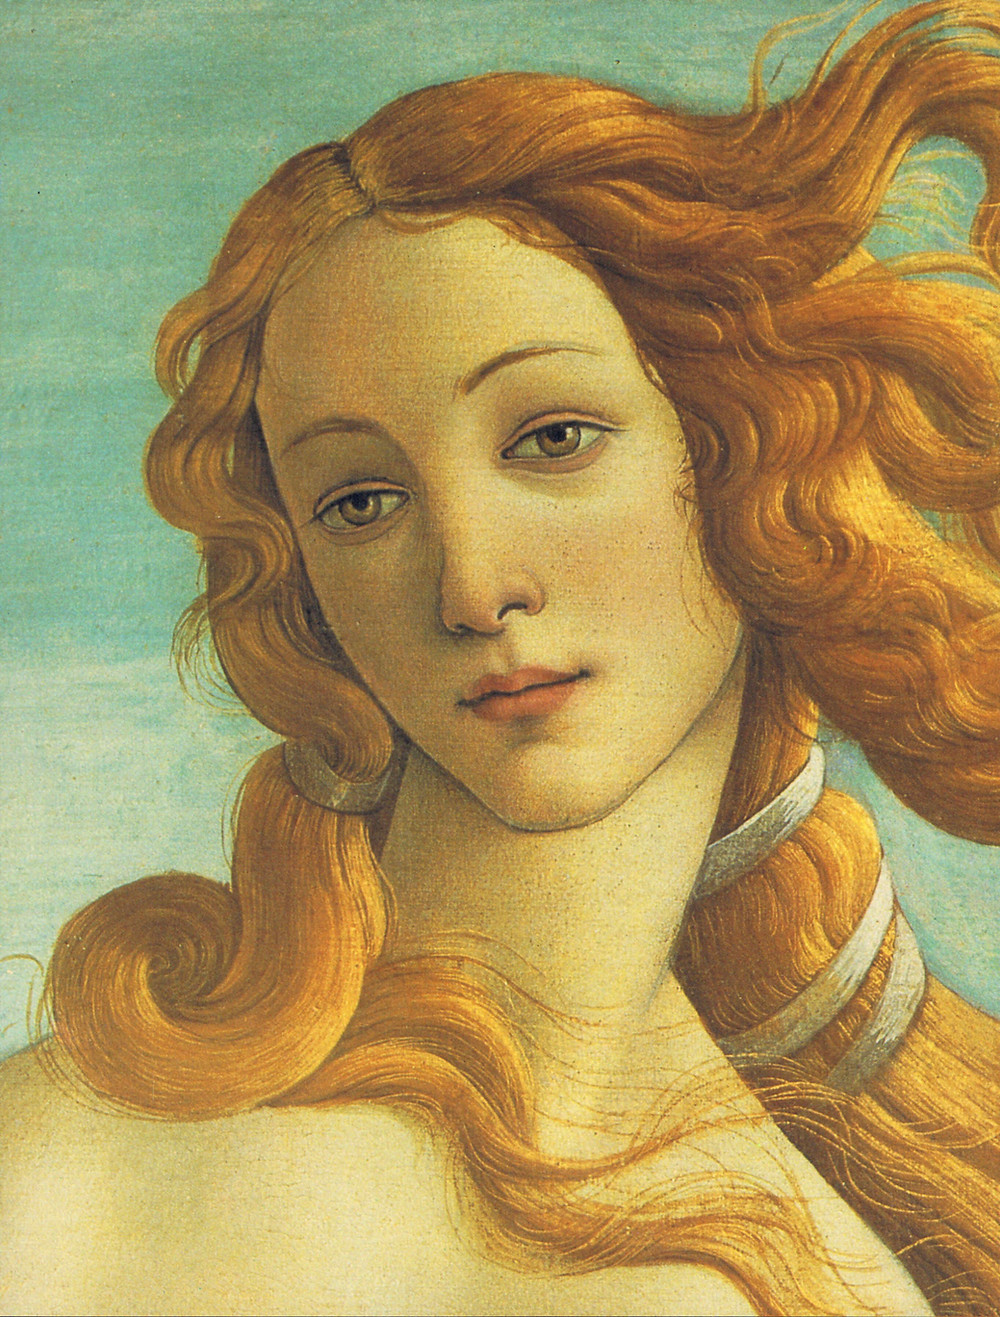 detail of Venus in Botticelli's most famous painting, The Birth of Venus